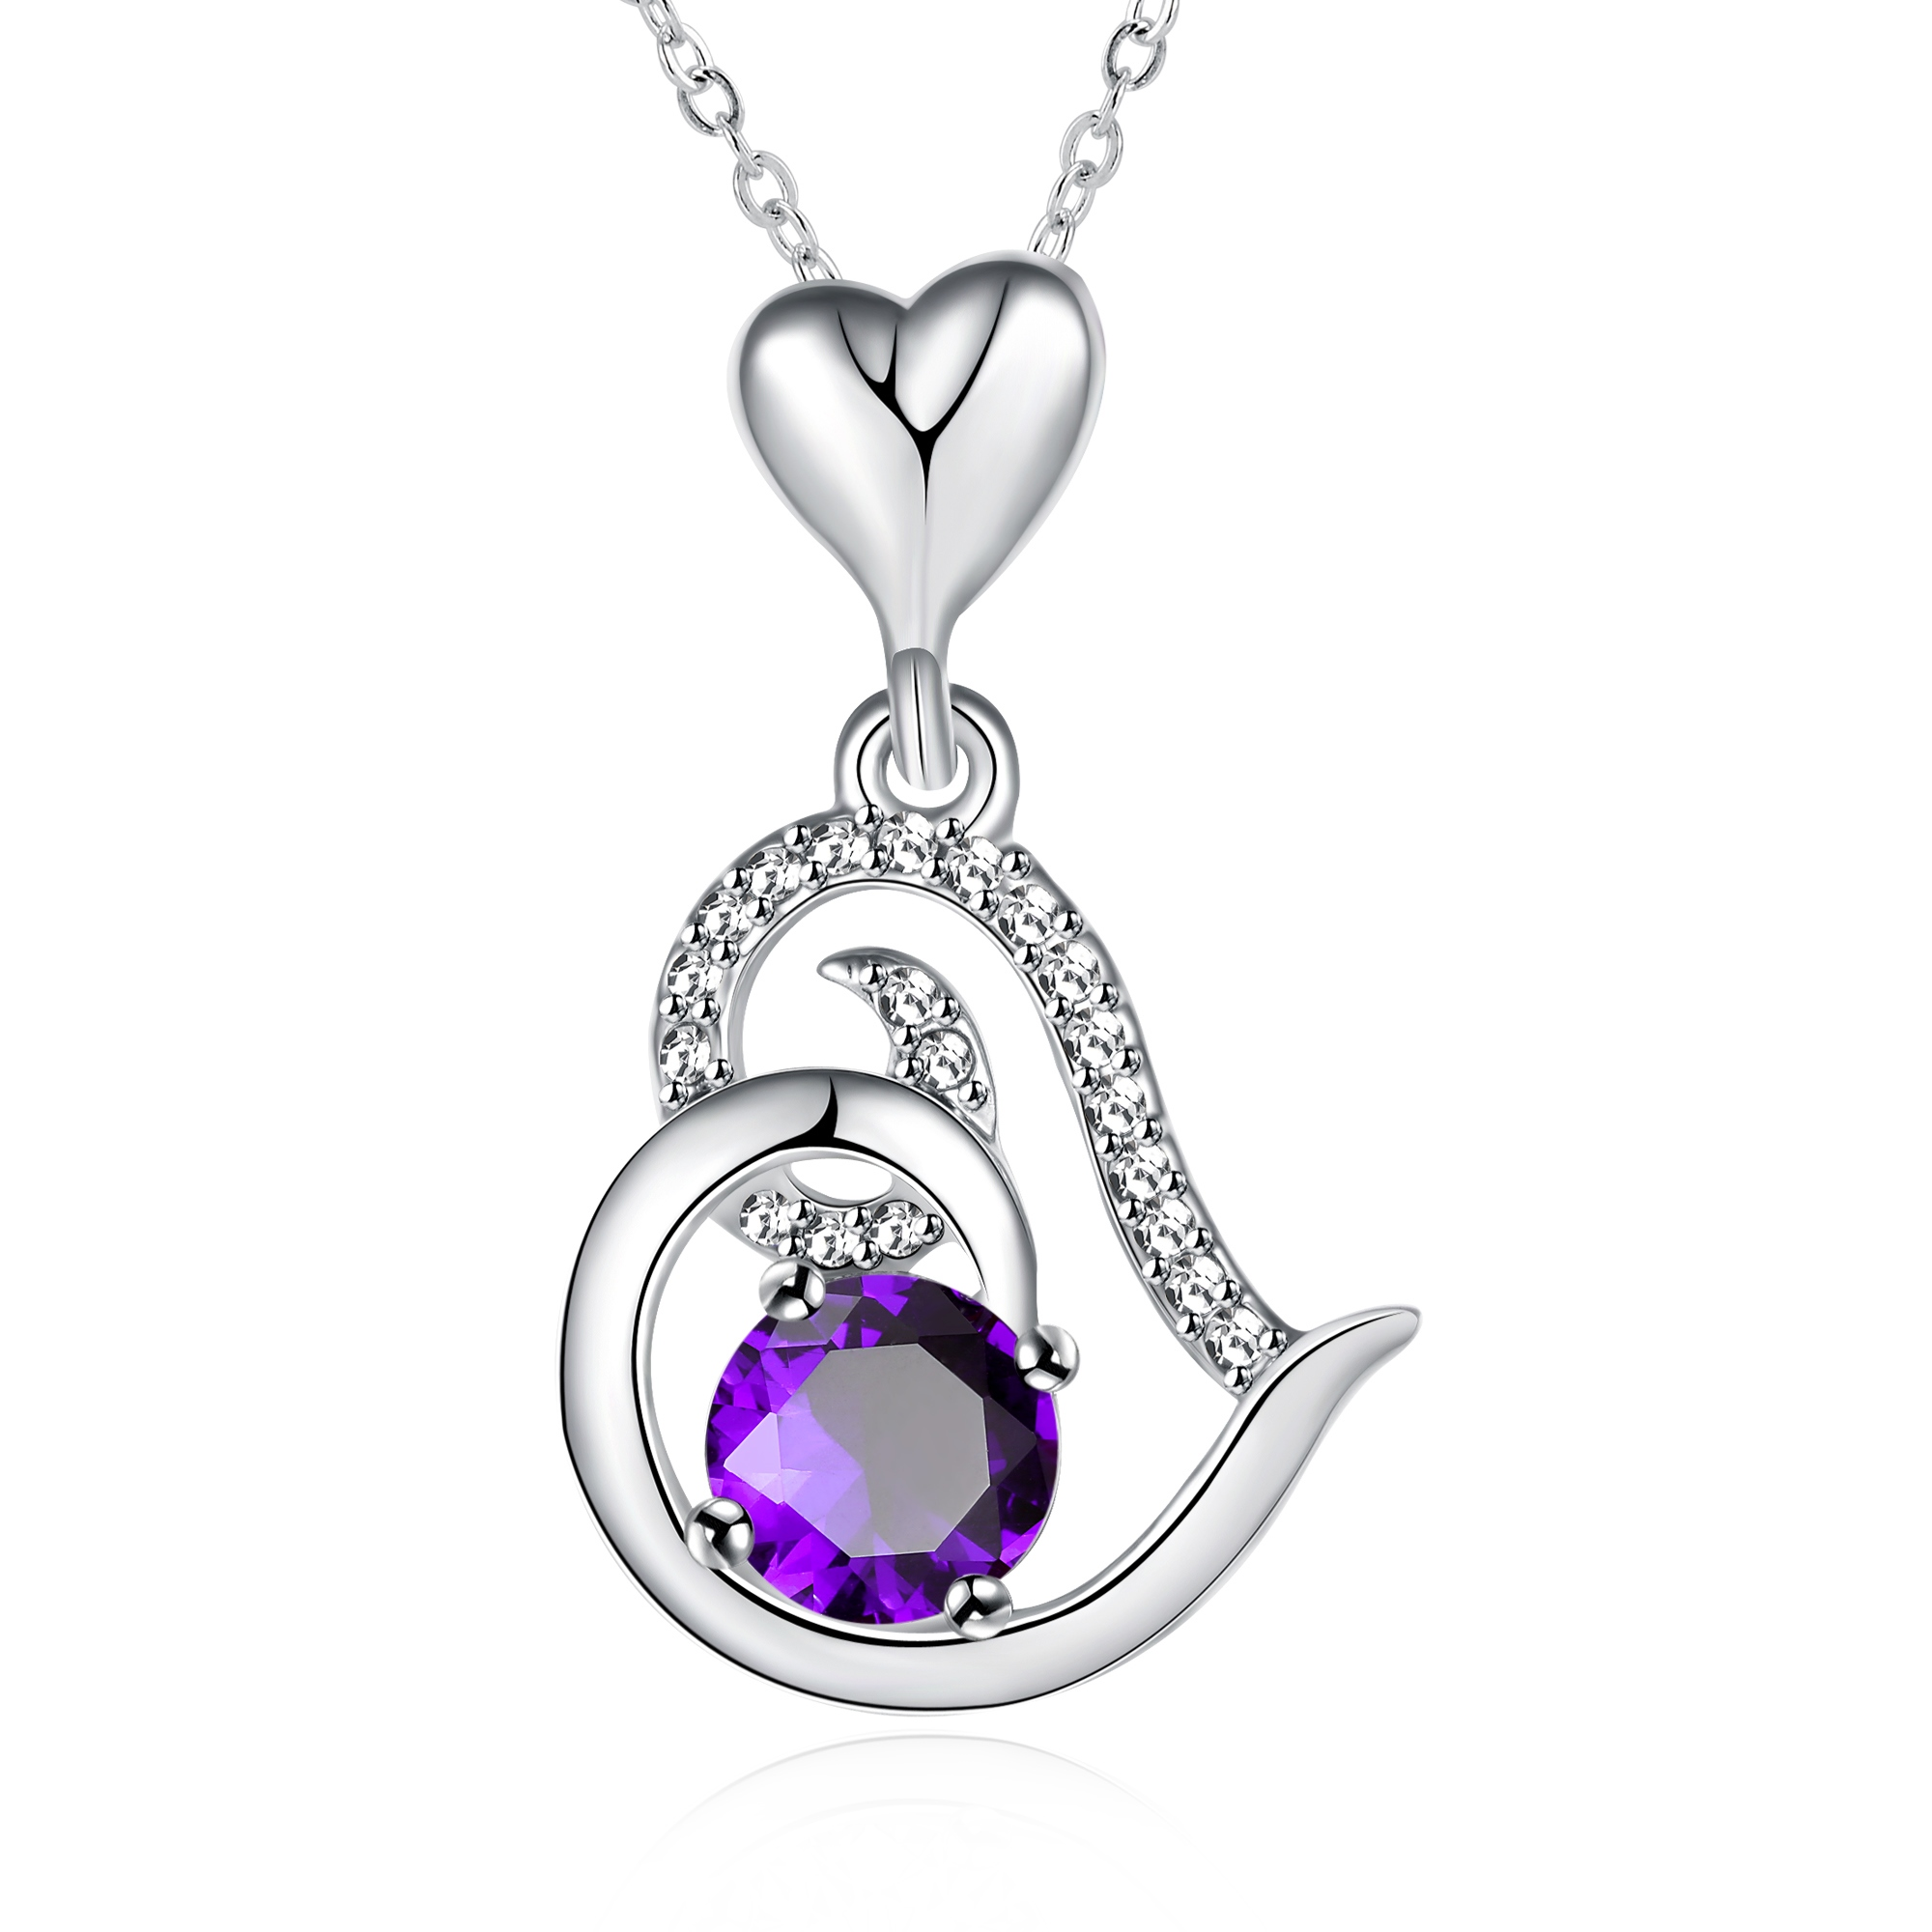 Ericdress High Quality Amethyst Inaly Heart Ultra Violet Pendant Necklace